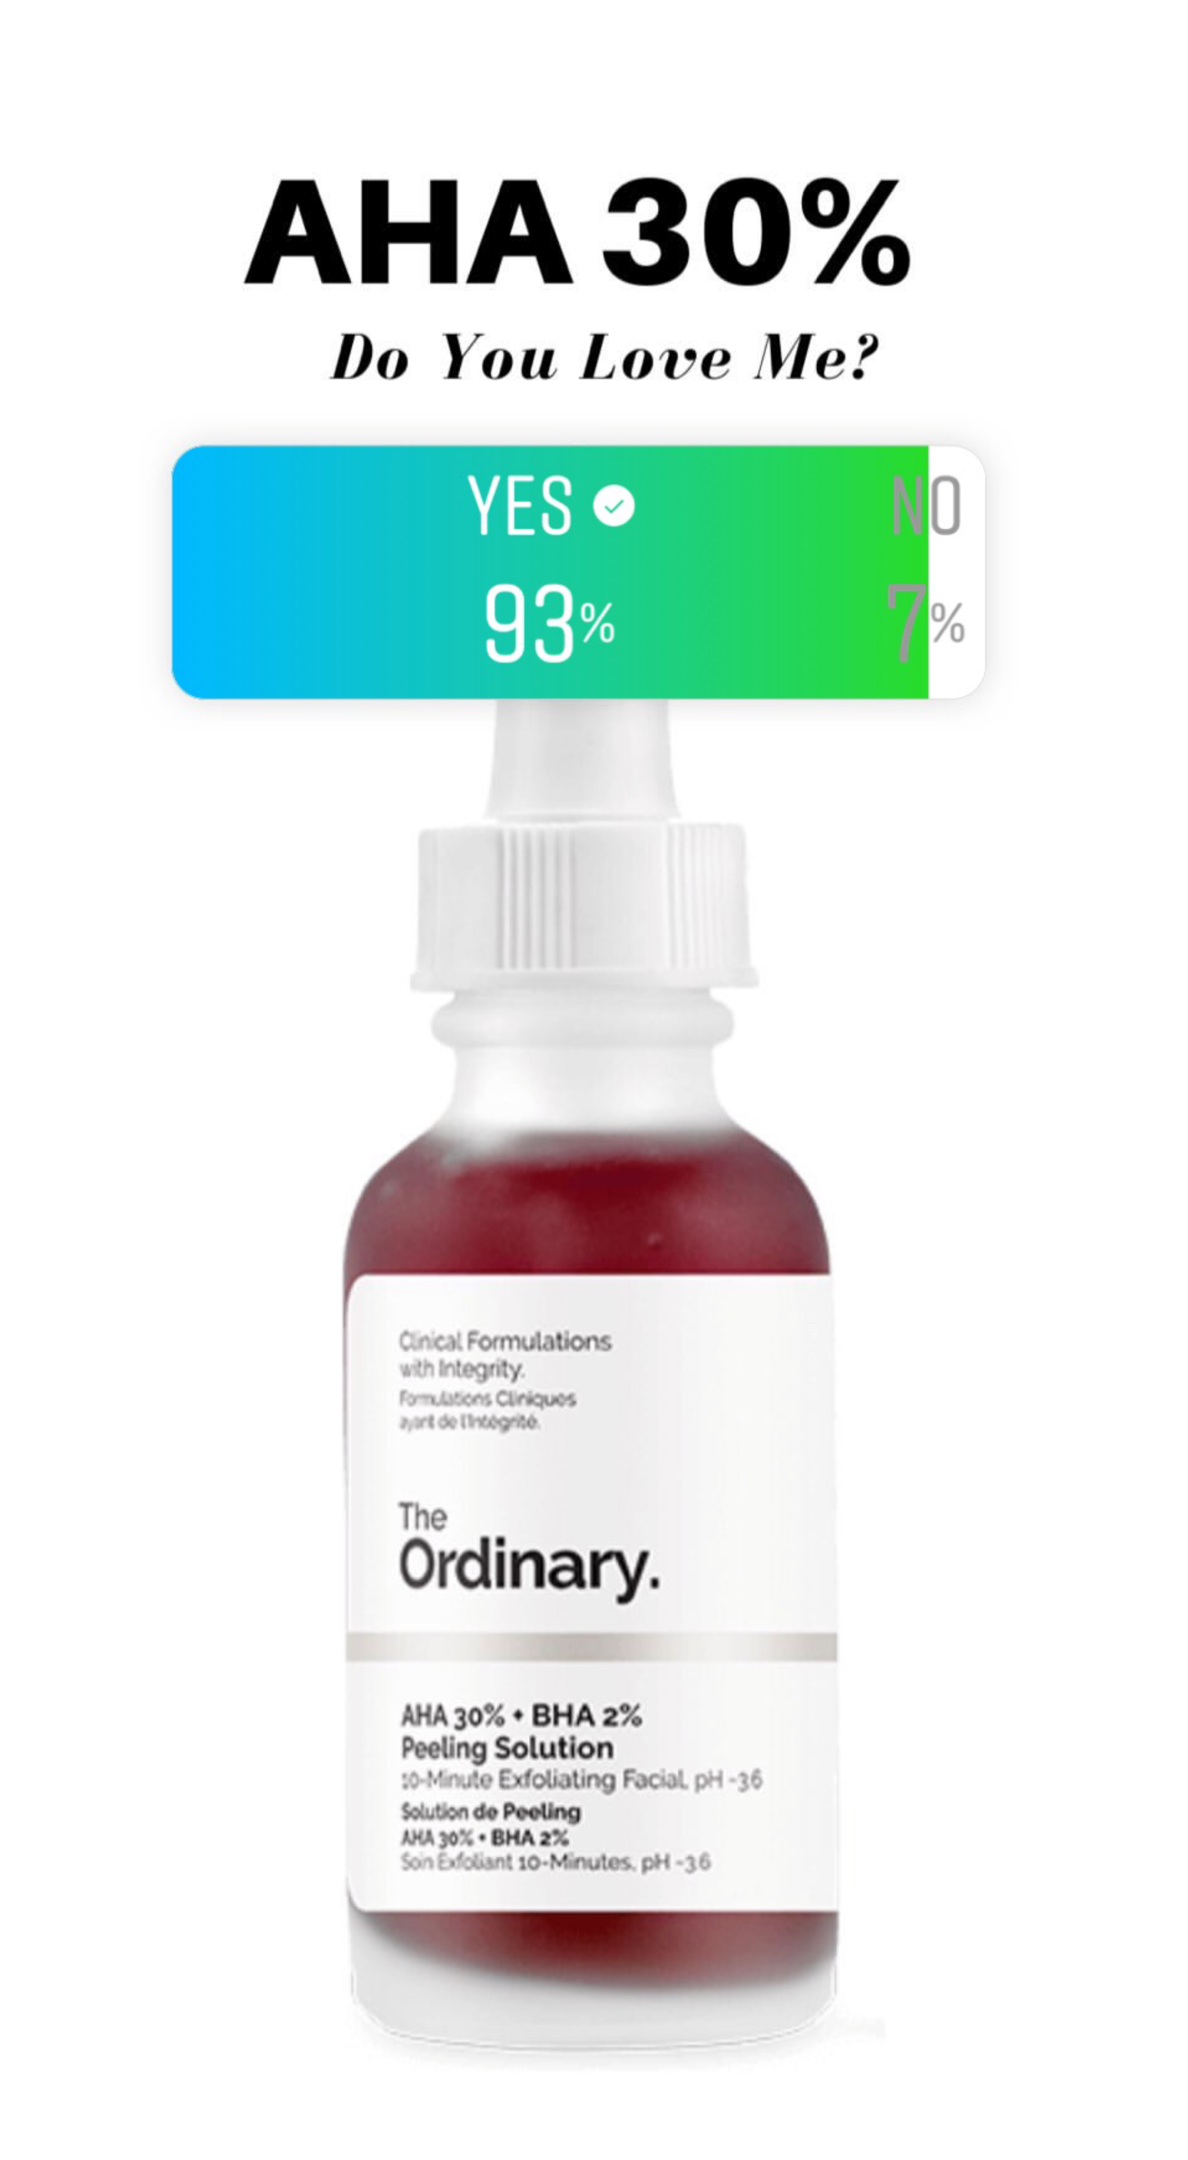 The Ordinary AHA 30 + BHA 2 Reviews by 100,000 Deciem